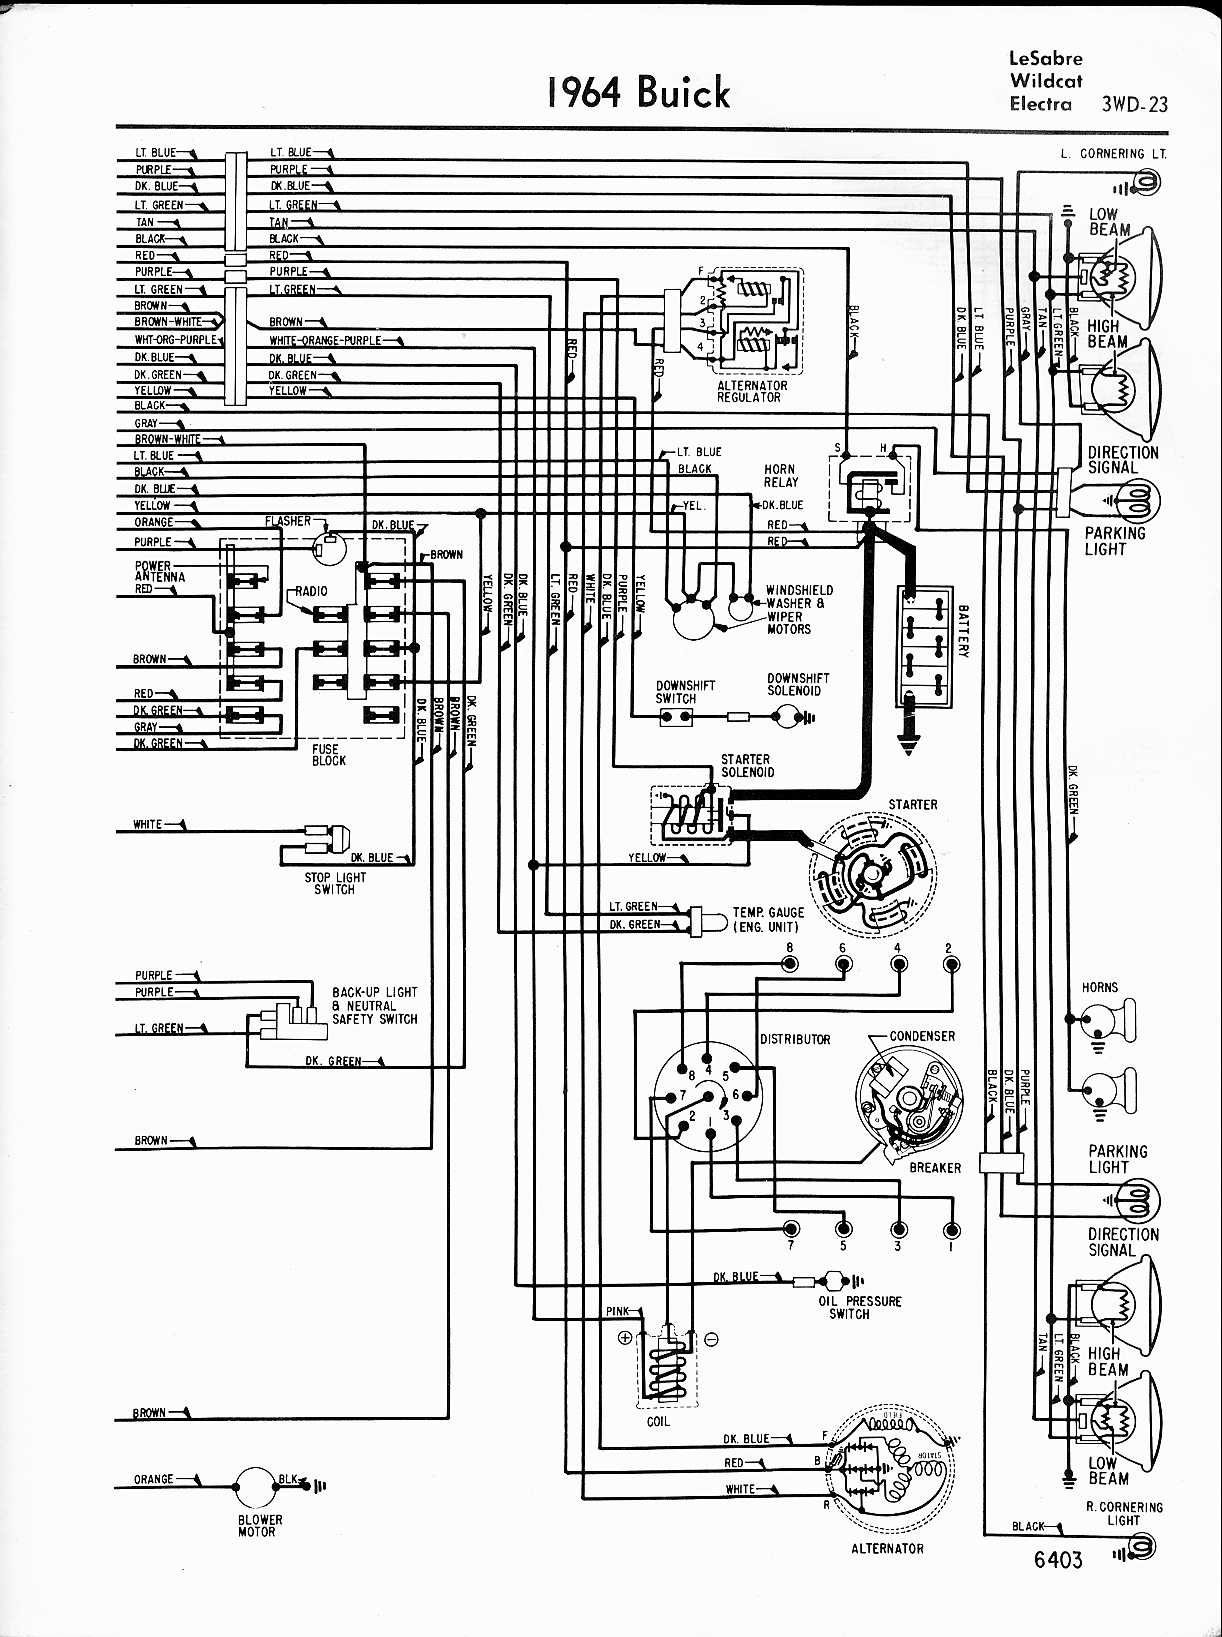 MWireBuic65_3WD 023 buick wiring diagrams 1957 1965 Buick LeSabre Engine Diagram at panicattacktreatment.co